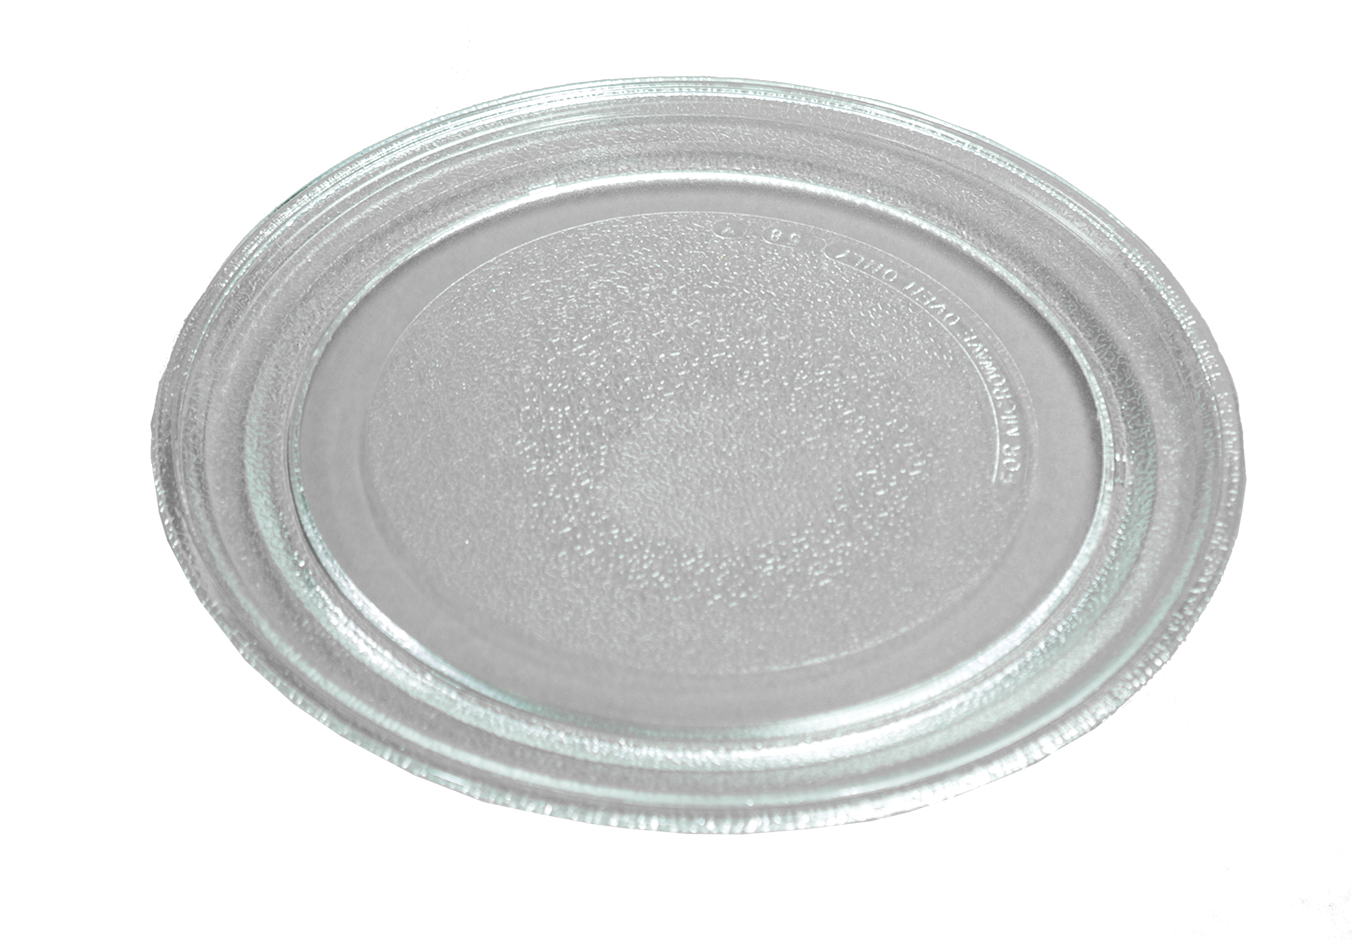 LG Microwave Glass Tray 3390W1G006B